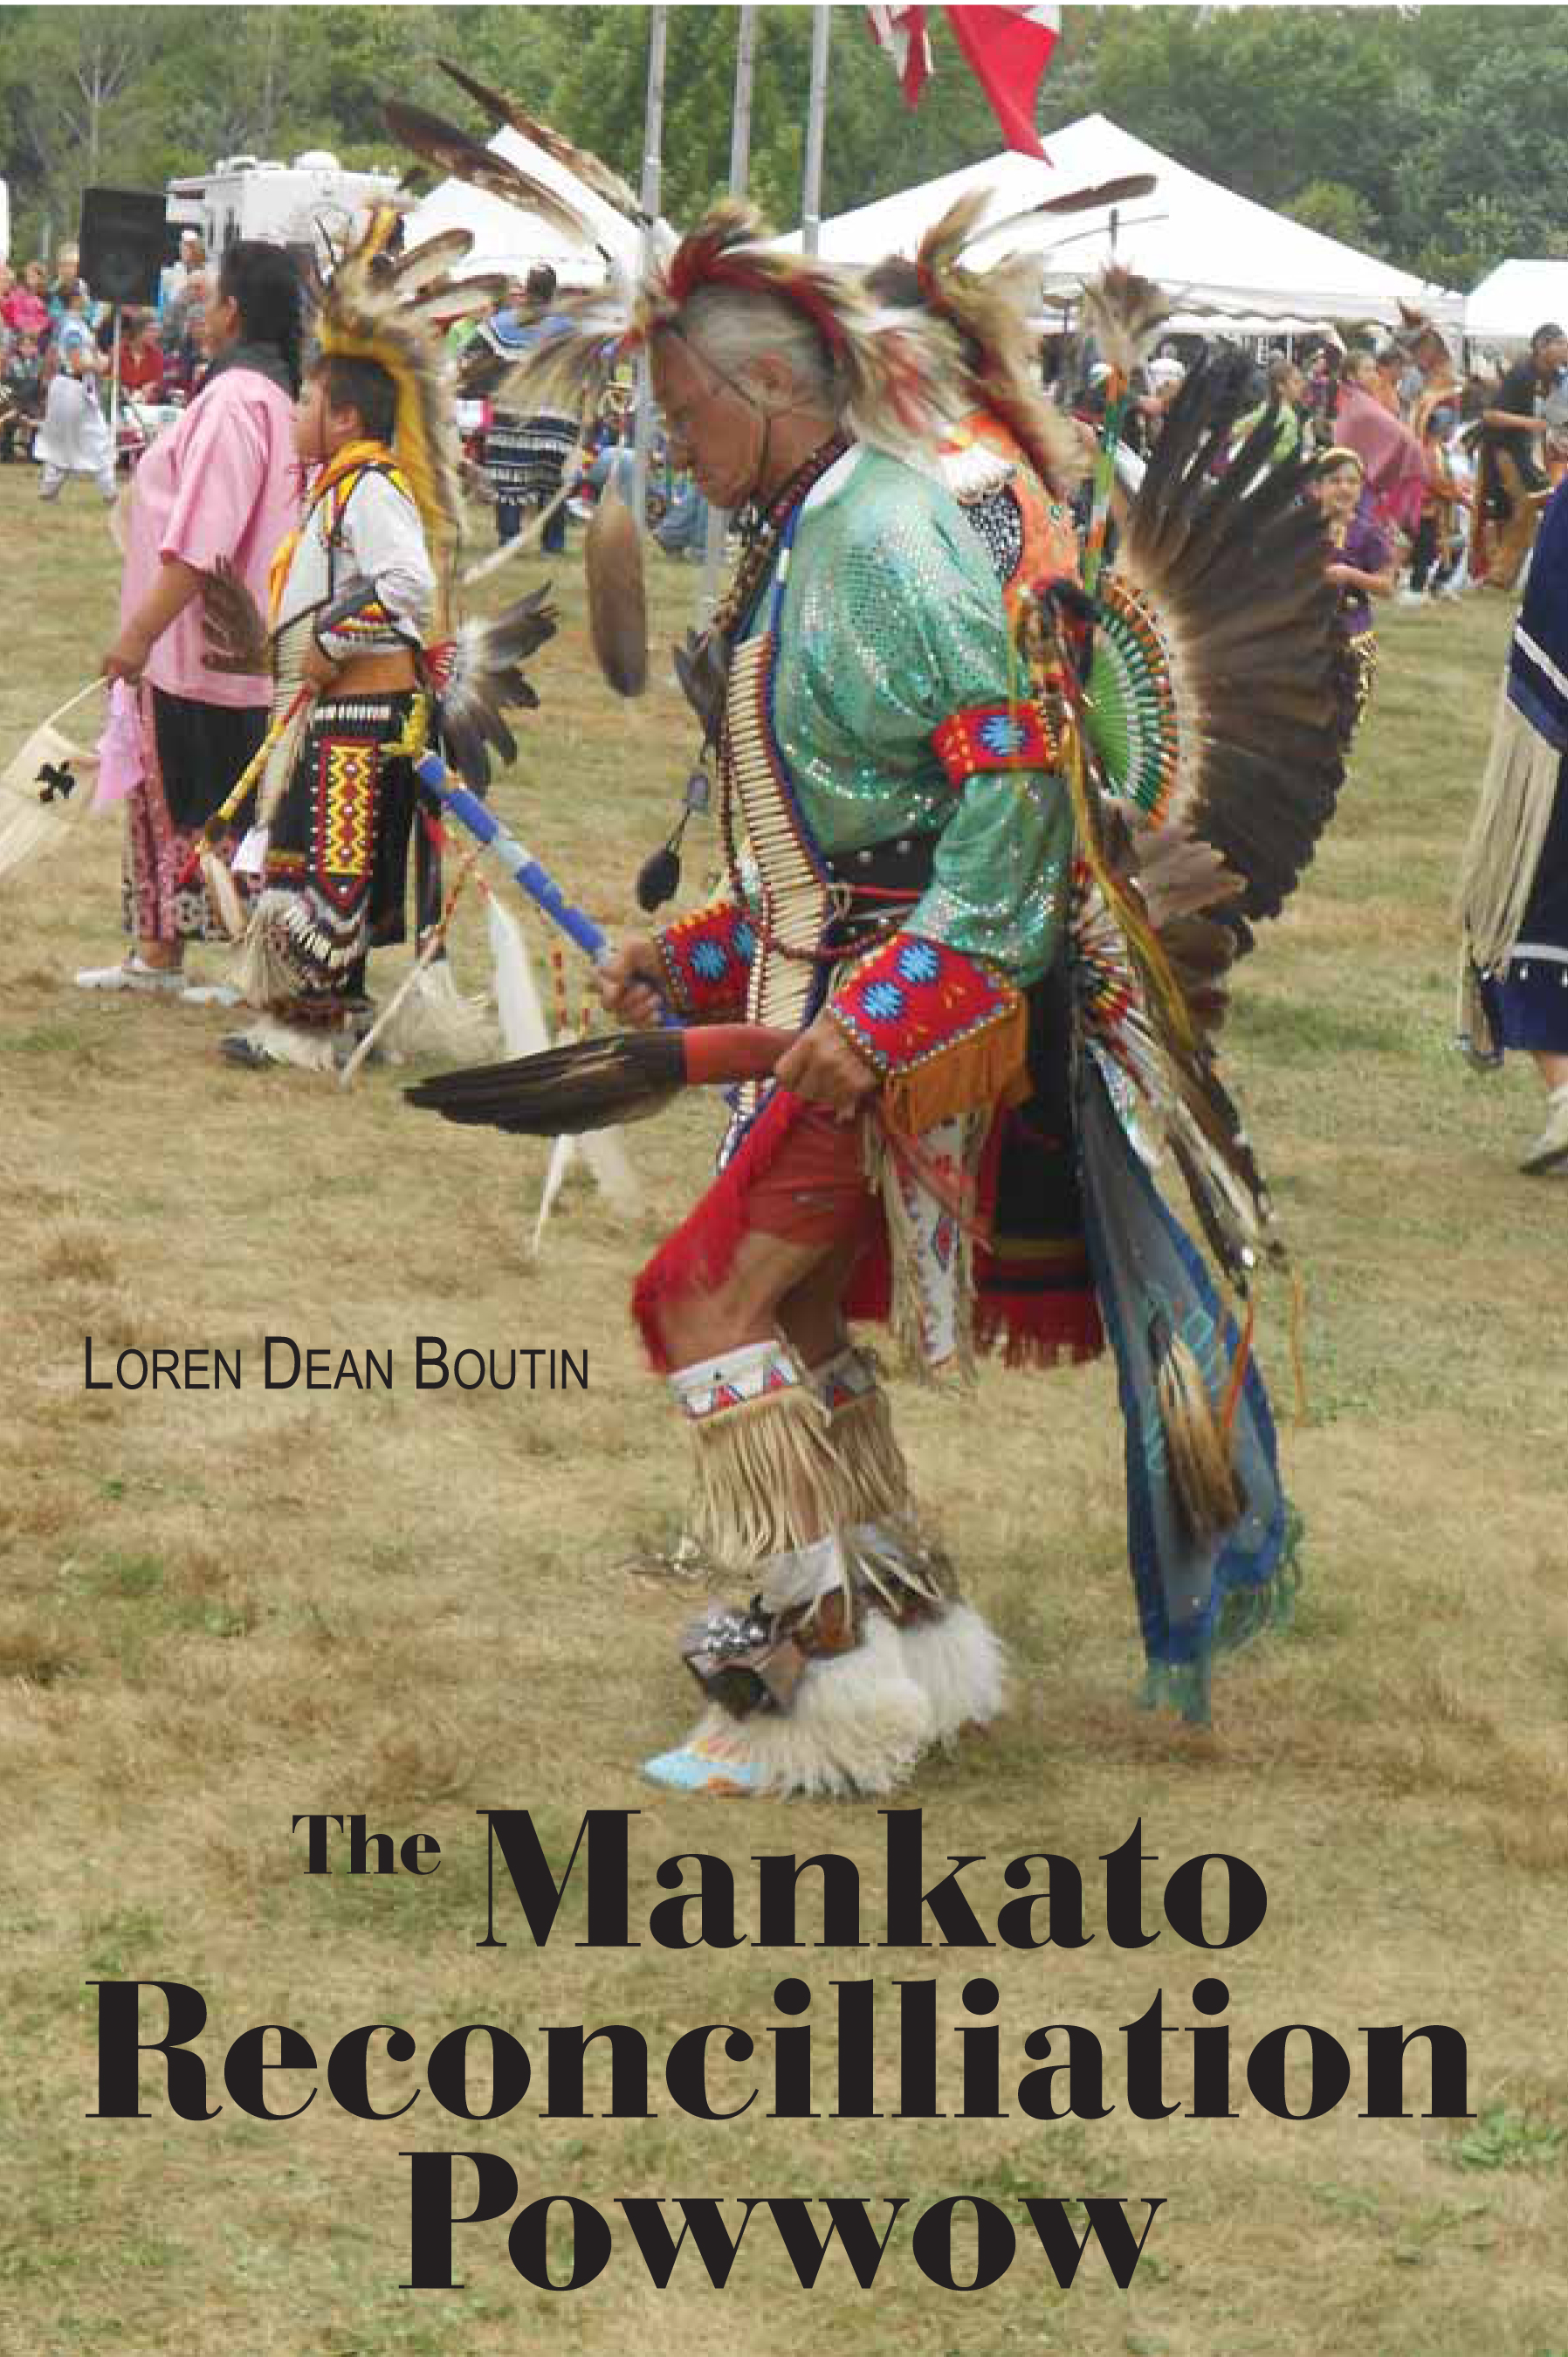 The Mankato Reconcilliation Powwow